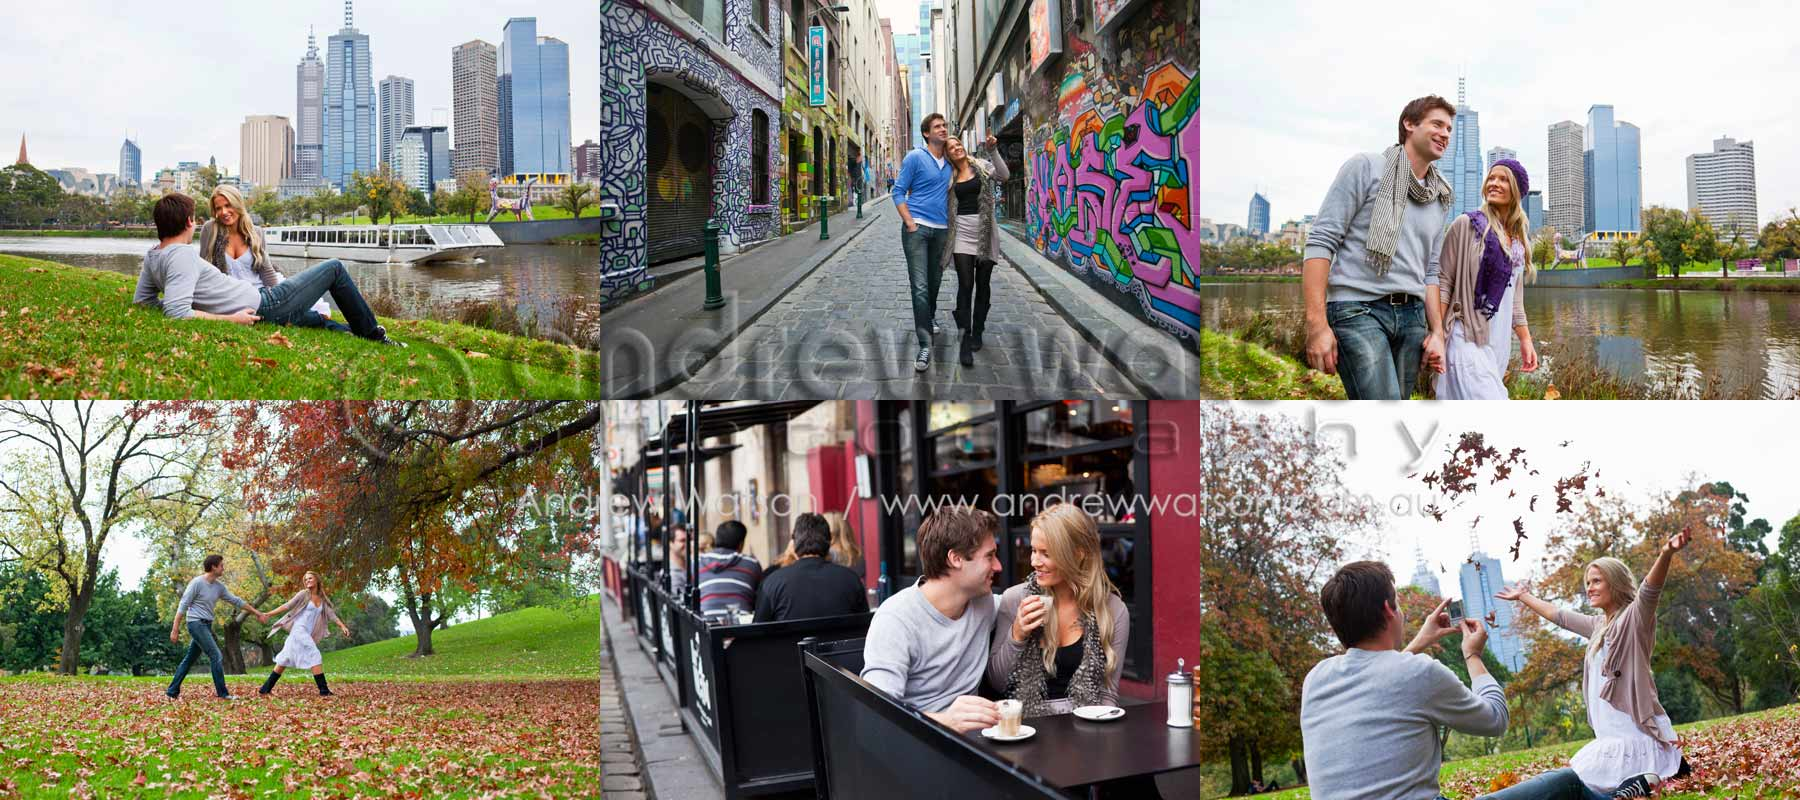 Tourism & Lifestyle Photography - Images of couple enjoying autumn in the city, Melbourne, Victoria